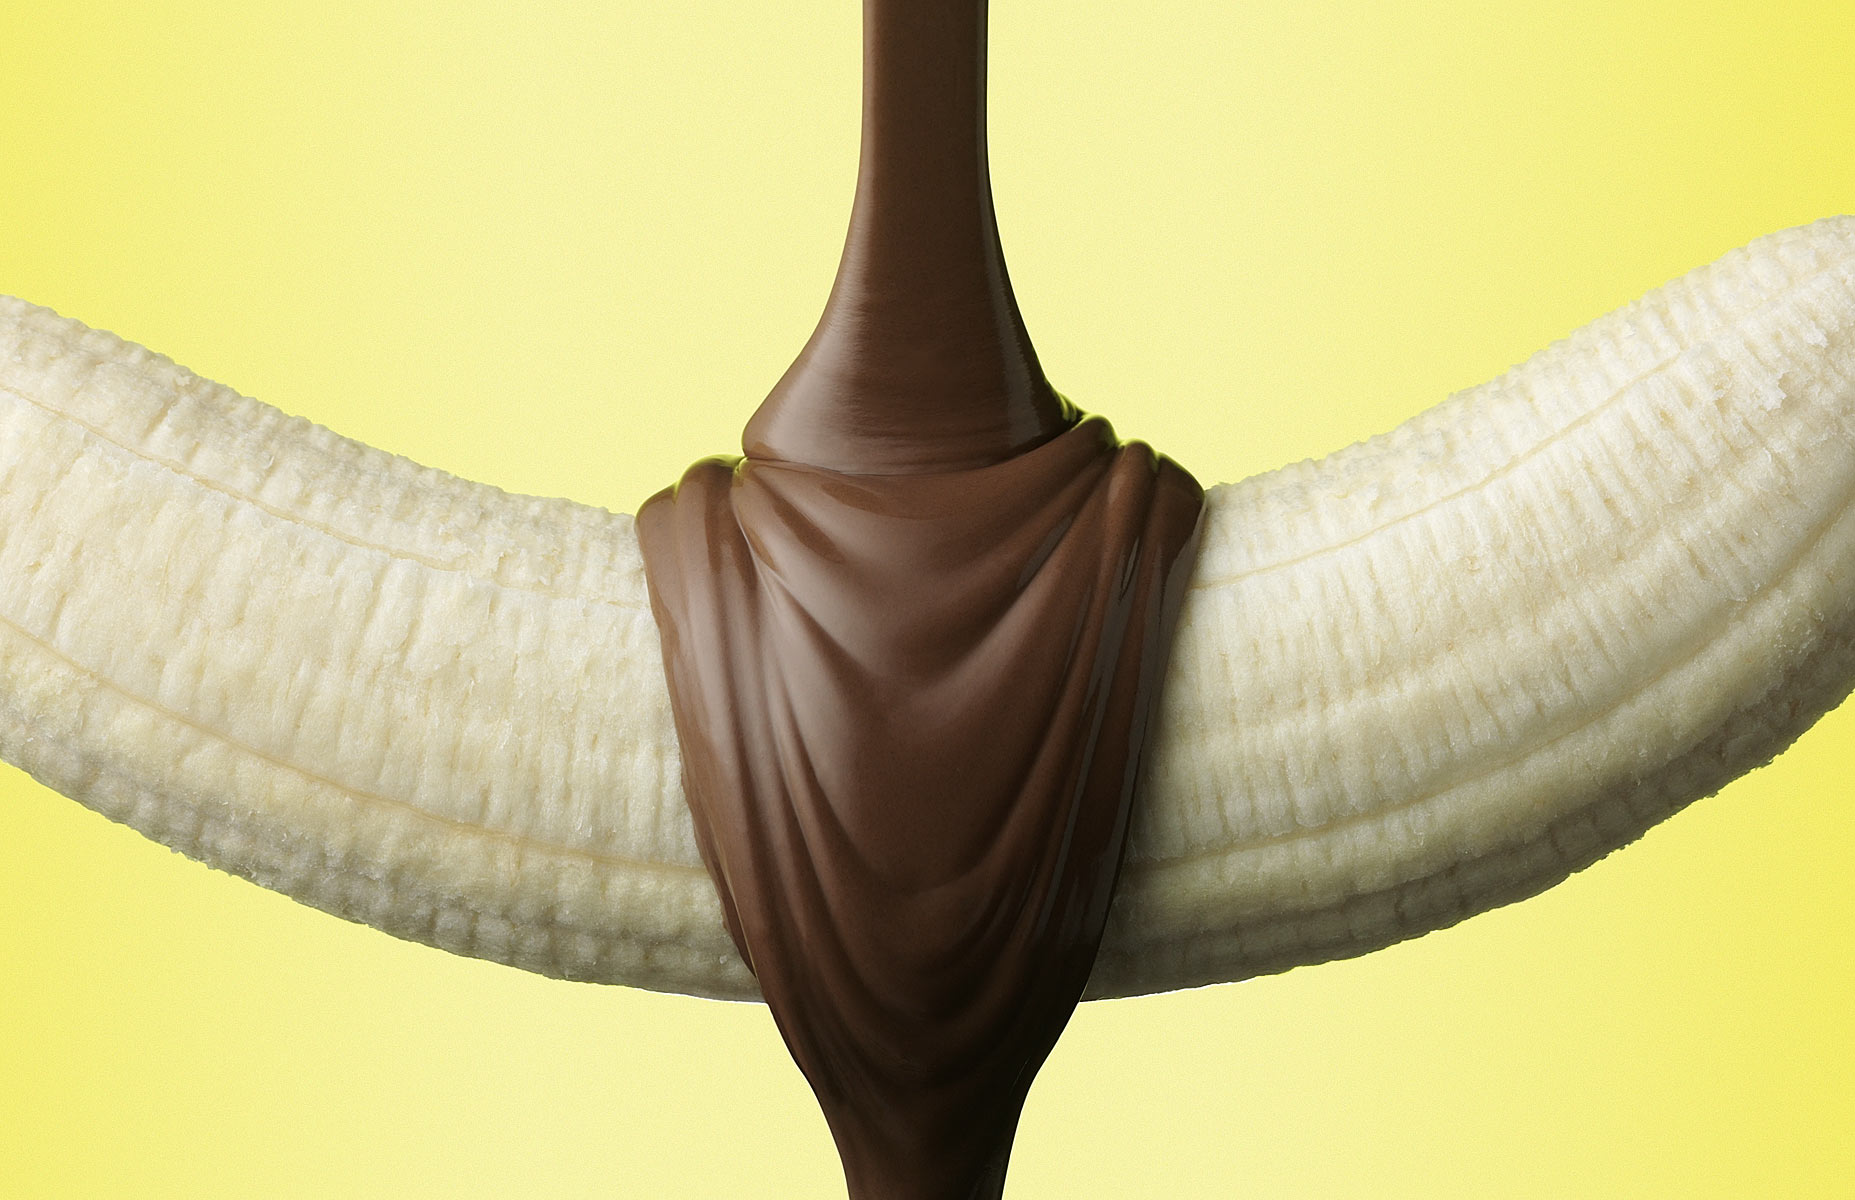 Chocolate Pour On Banana